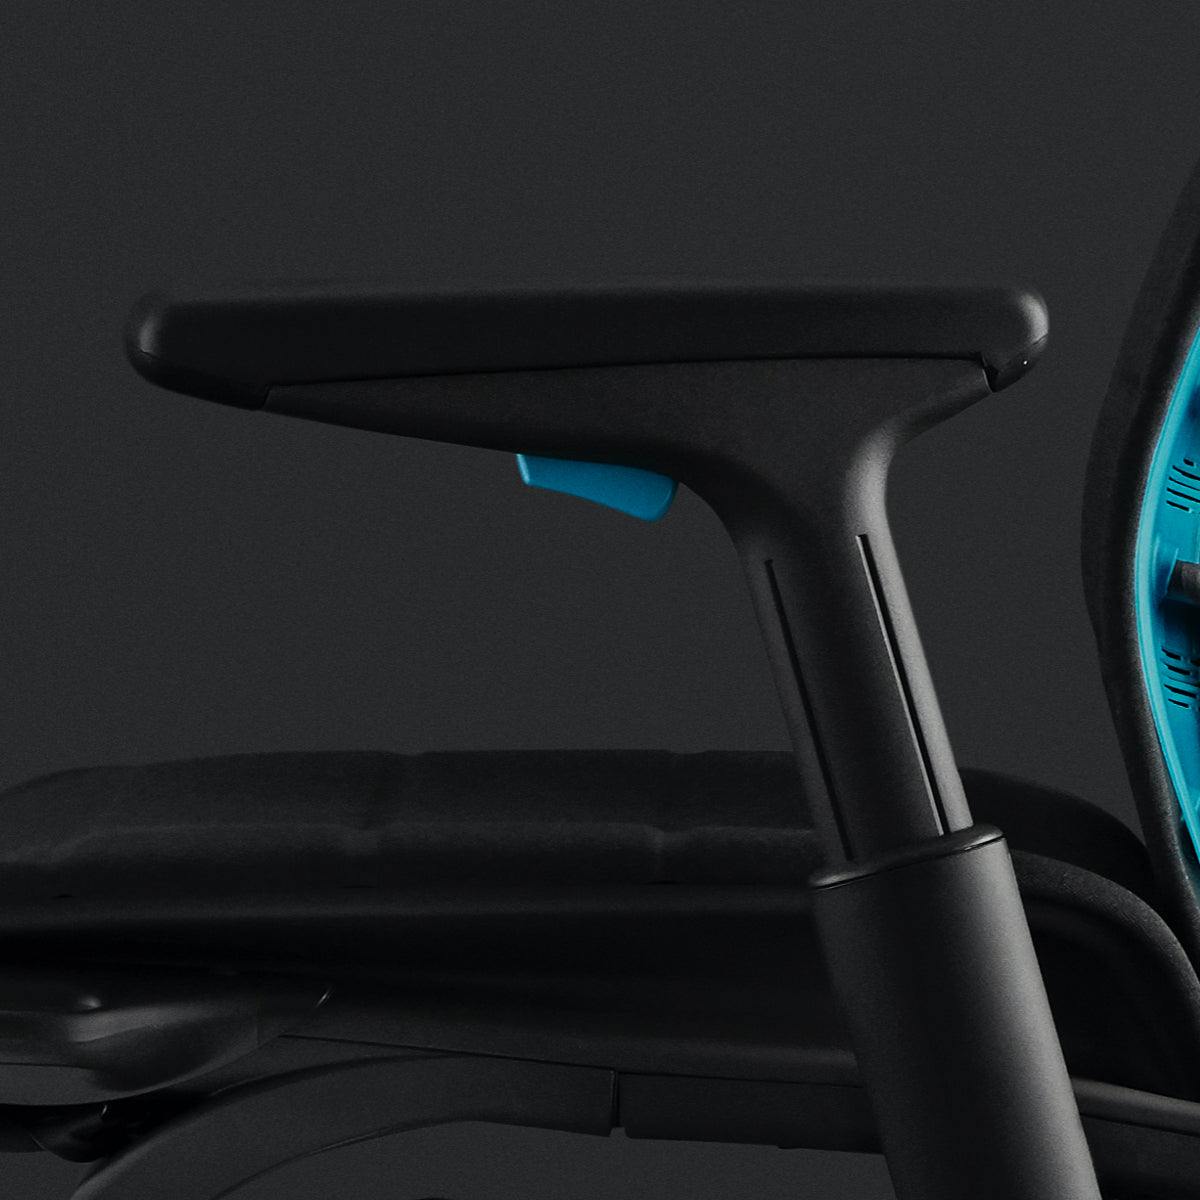 Embody Gaming Chair close-up on left arm featuring the injection-moulded foam in black. Also shows the cyan adjuster and cyan back of chair on a black background.